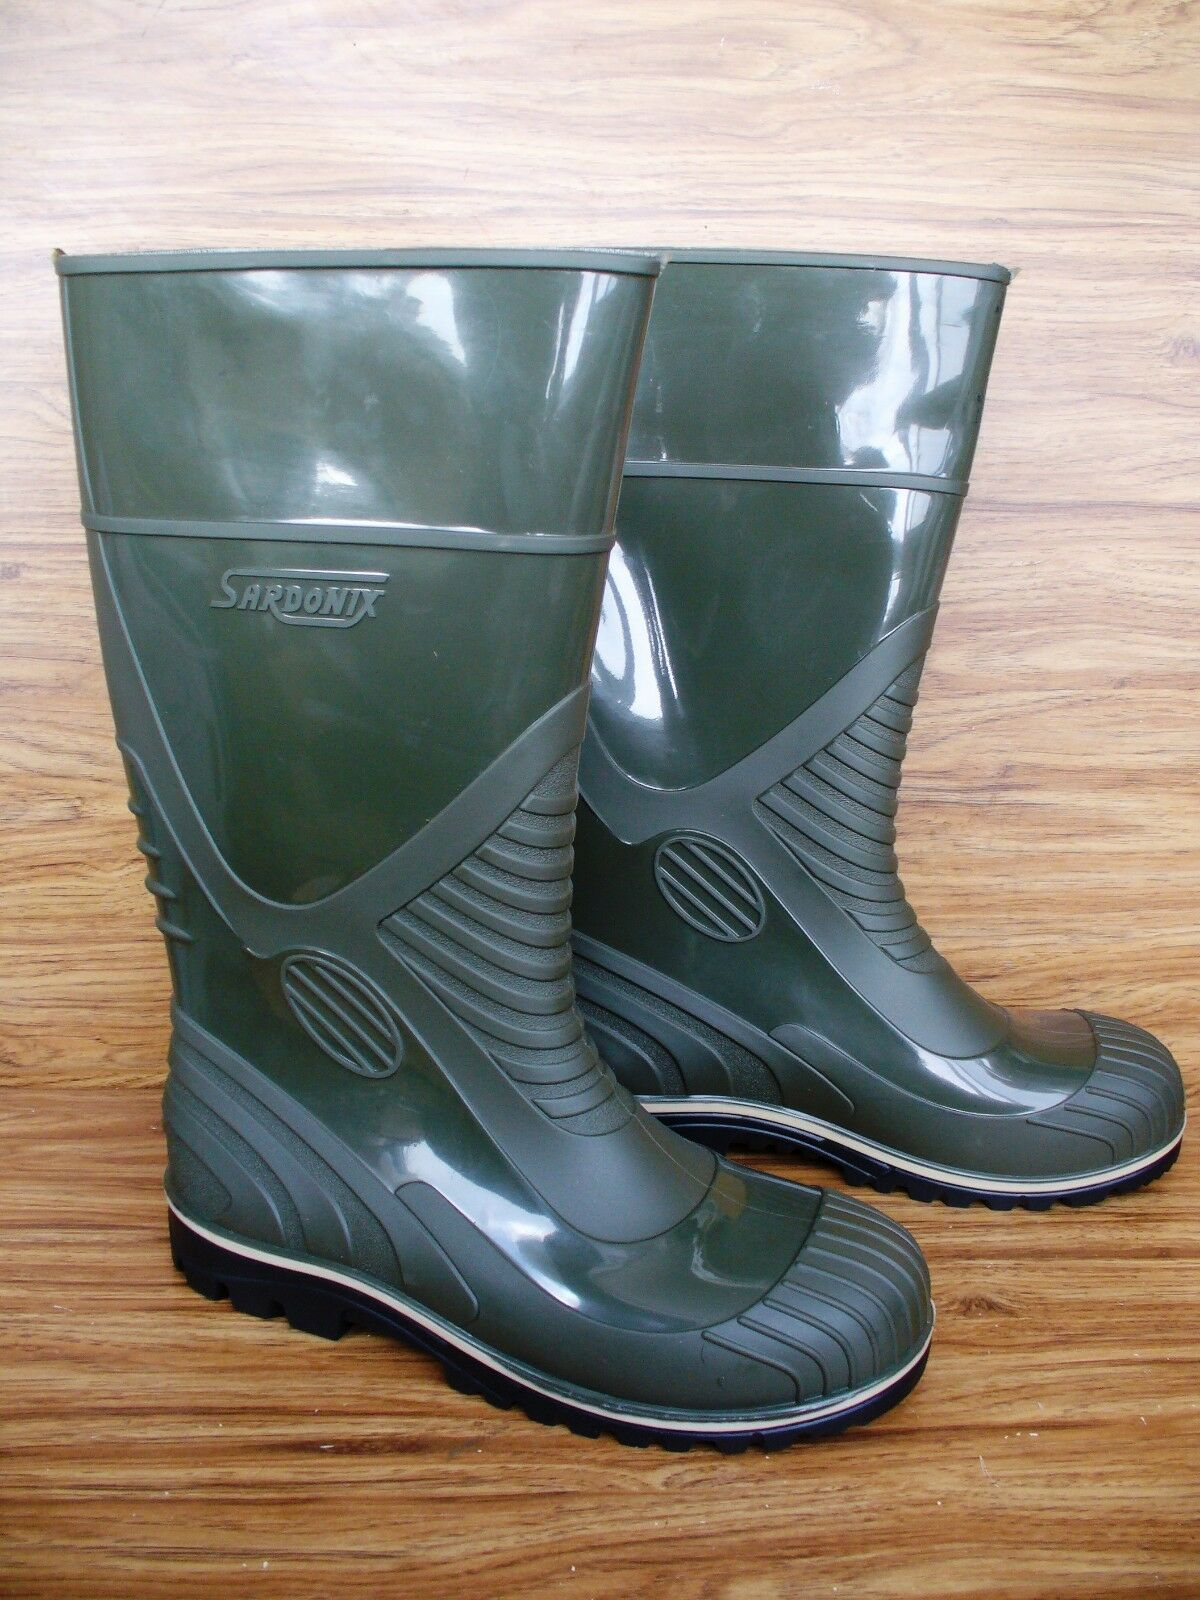 Hunting Fishing PVC rubber High boots waterproof deep Tread Size New